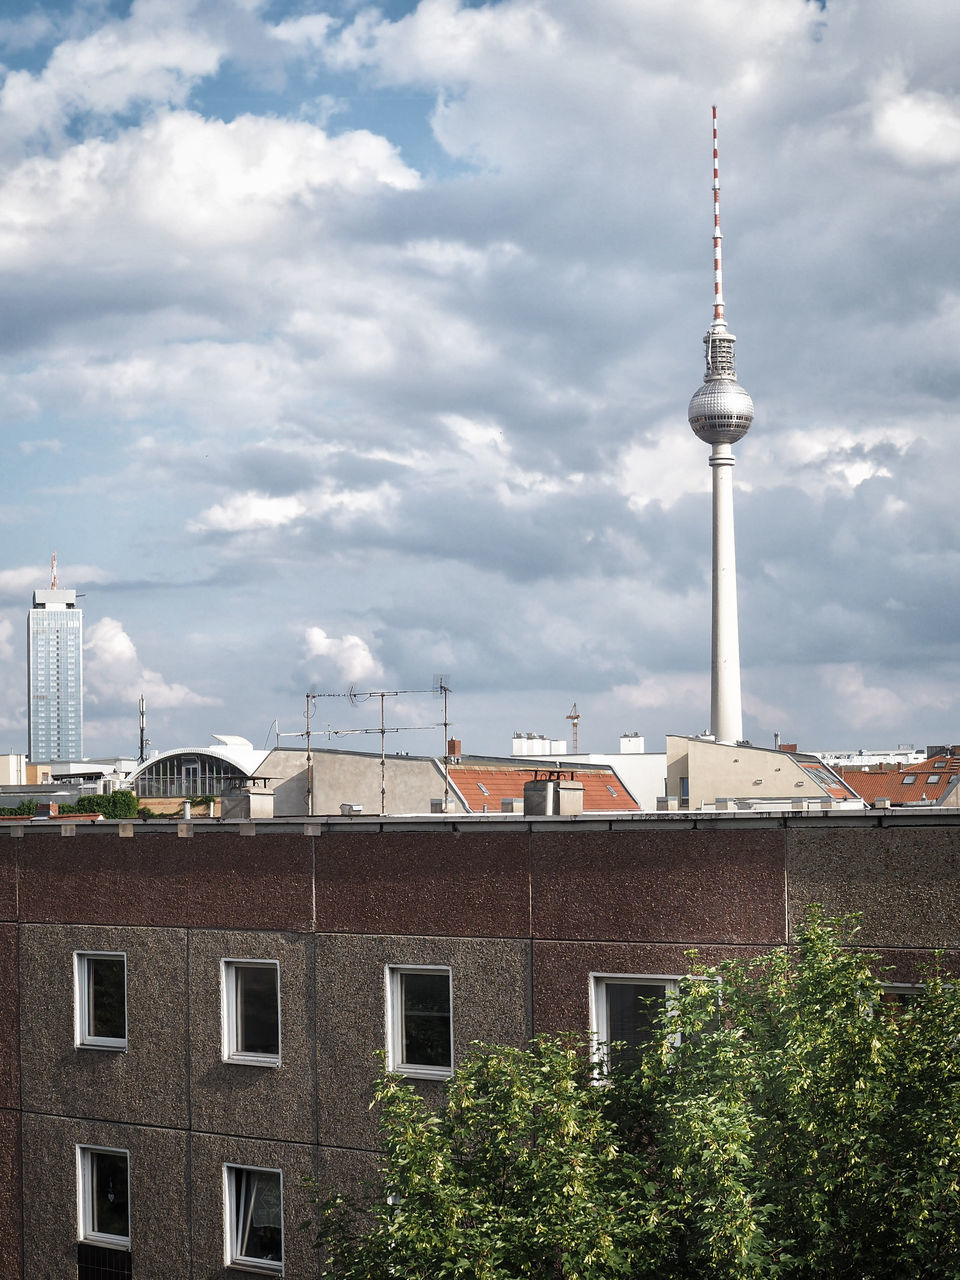 View Of Communications Tower In City Against Sky